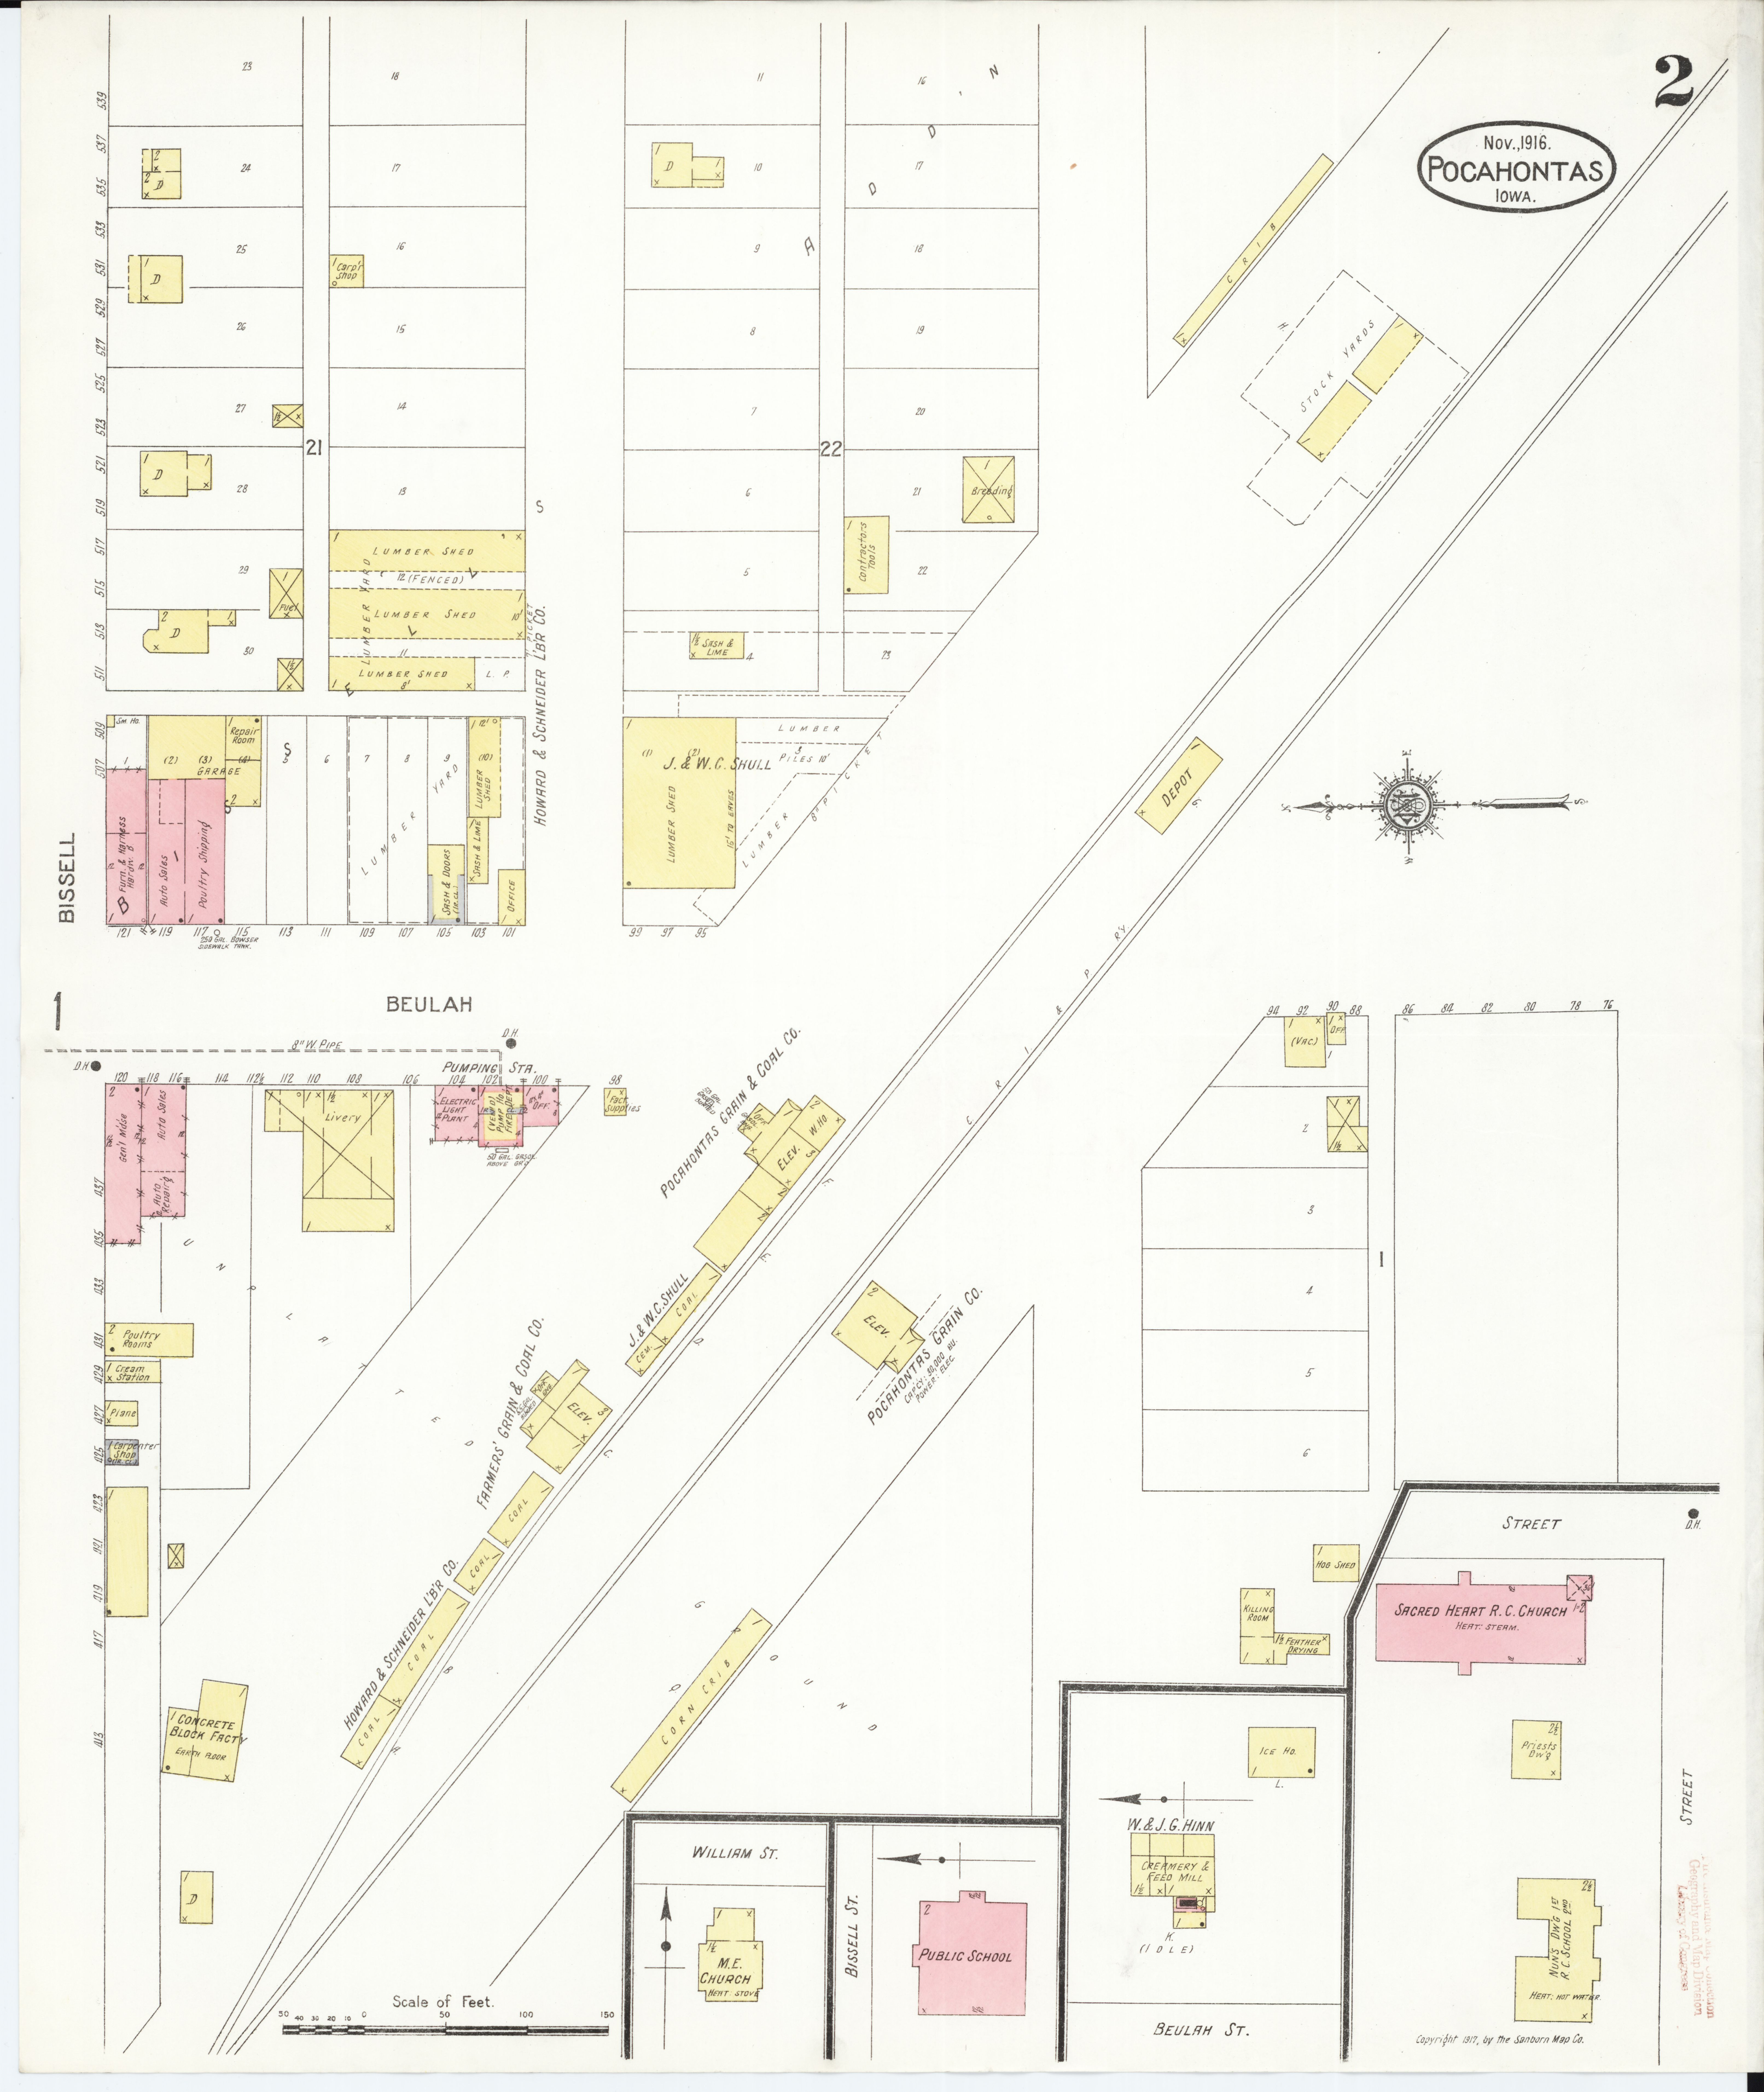 County Line 2 Fire Map.File Sanborn Fire Insurance Map From Pocahontas Pocahontas County